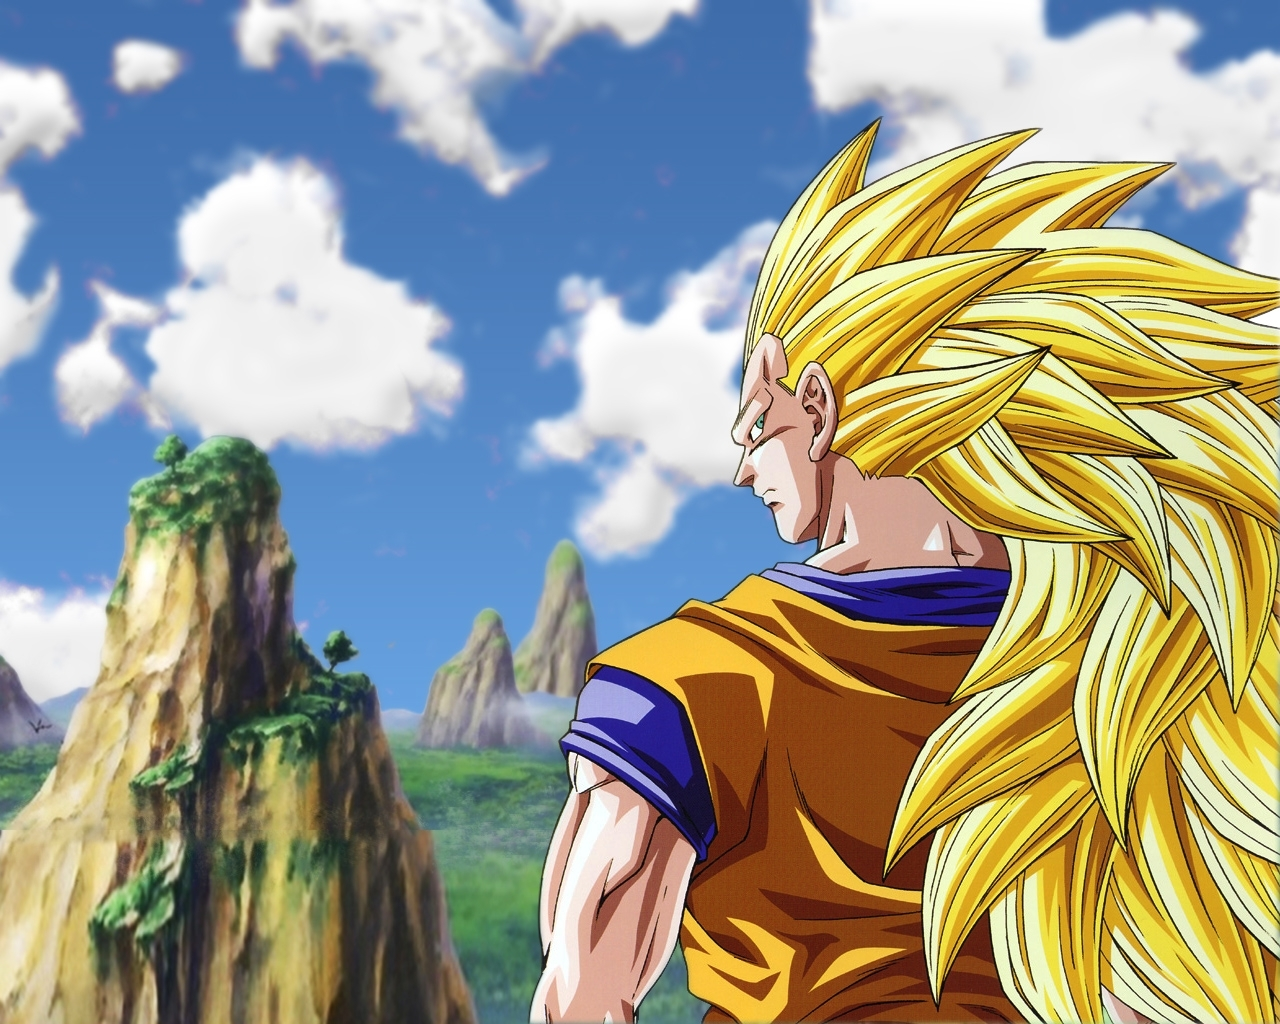 images16255428titlegoku super saiyan 3 wallpaper 1 wallpaper 1280x1024